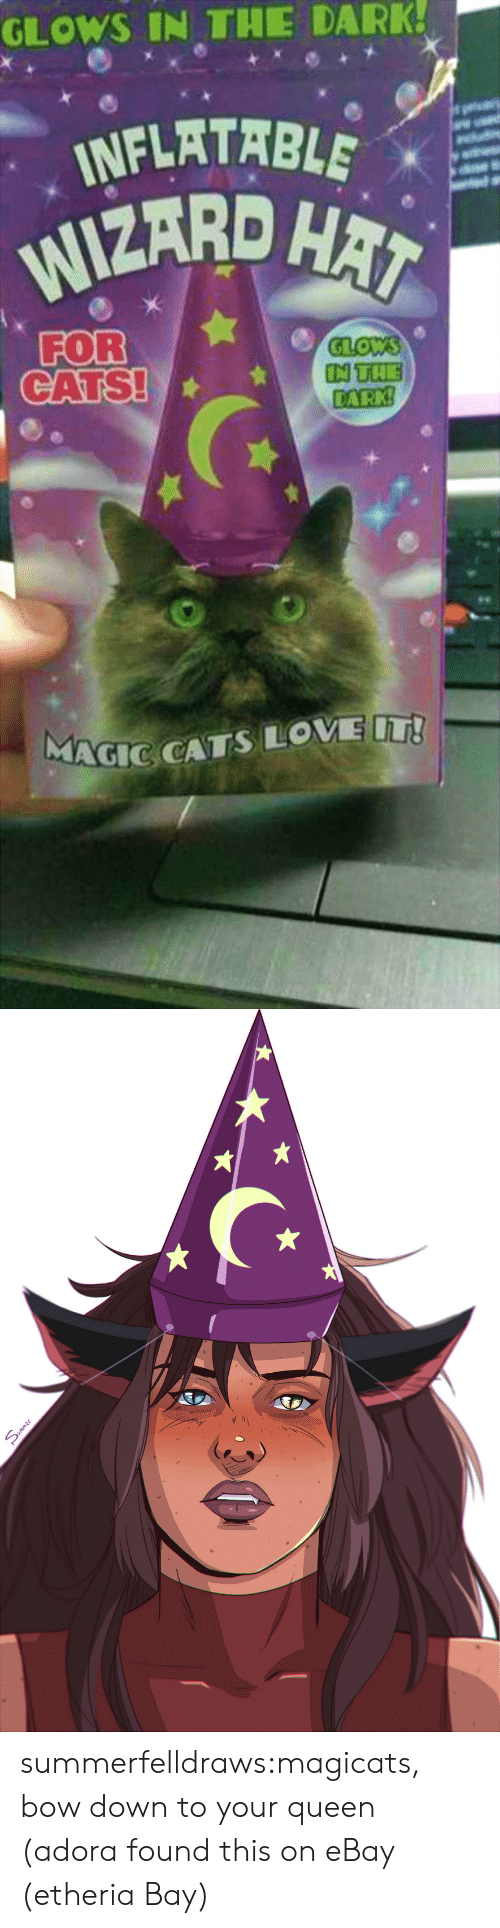 Cats, eBay, and Love: GLOWS IN THE DARK!  INFLATABLE  WIZARD HAT  FOR  CATS!  GLOWS  IN THE  DARK  MAGIC CATS LOVE T!   mme summerfelldraws:magicats, bow down to your queen (adora found this on eBay (etheria Bay)